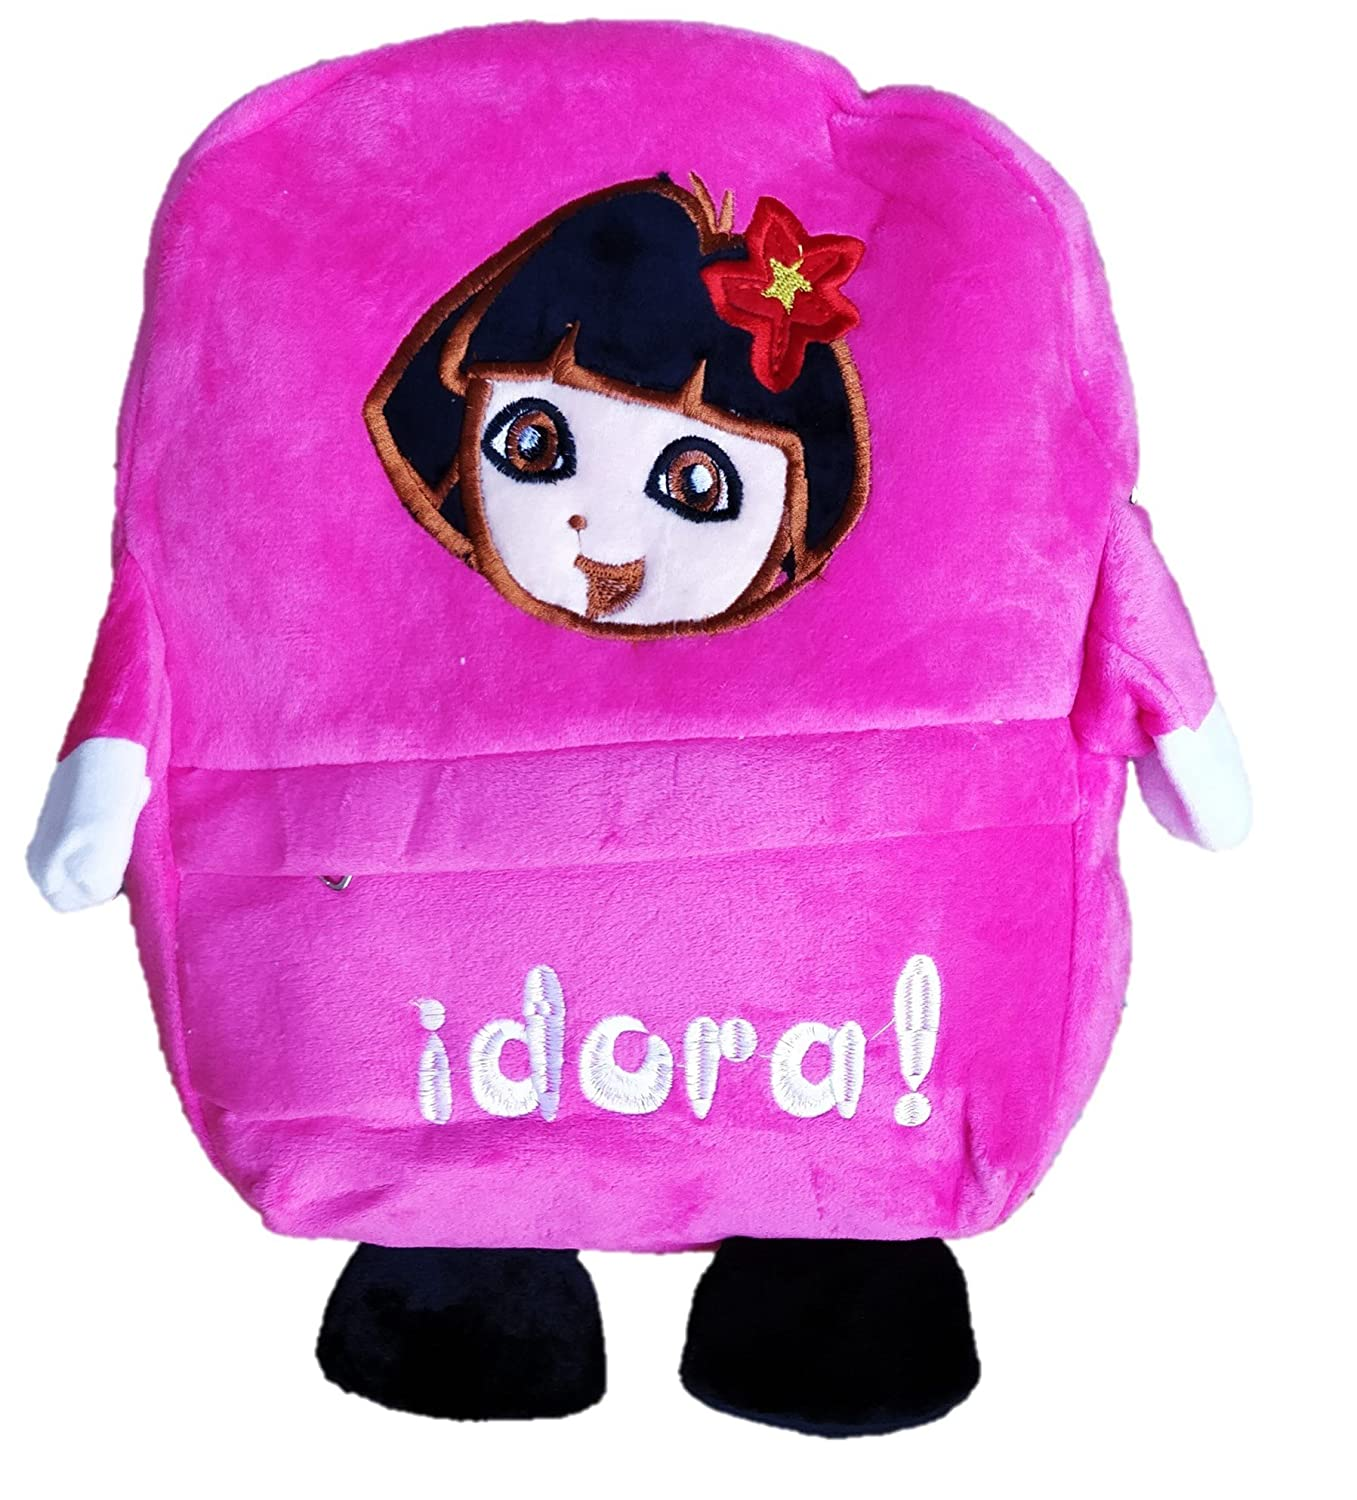 Buy ToyJoy Kid s Idora Princess Explorer 3 Compartment Plush Soft School  Cartoon Bag with Free Keychain 35cm (Multicolour) Online at Low Prices in  India ... 92d619b6505ce